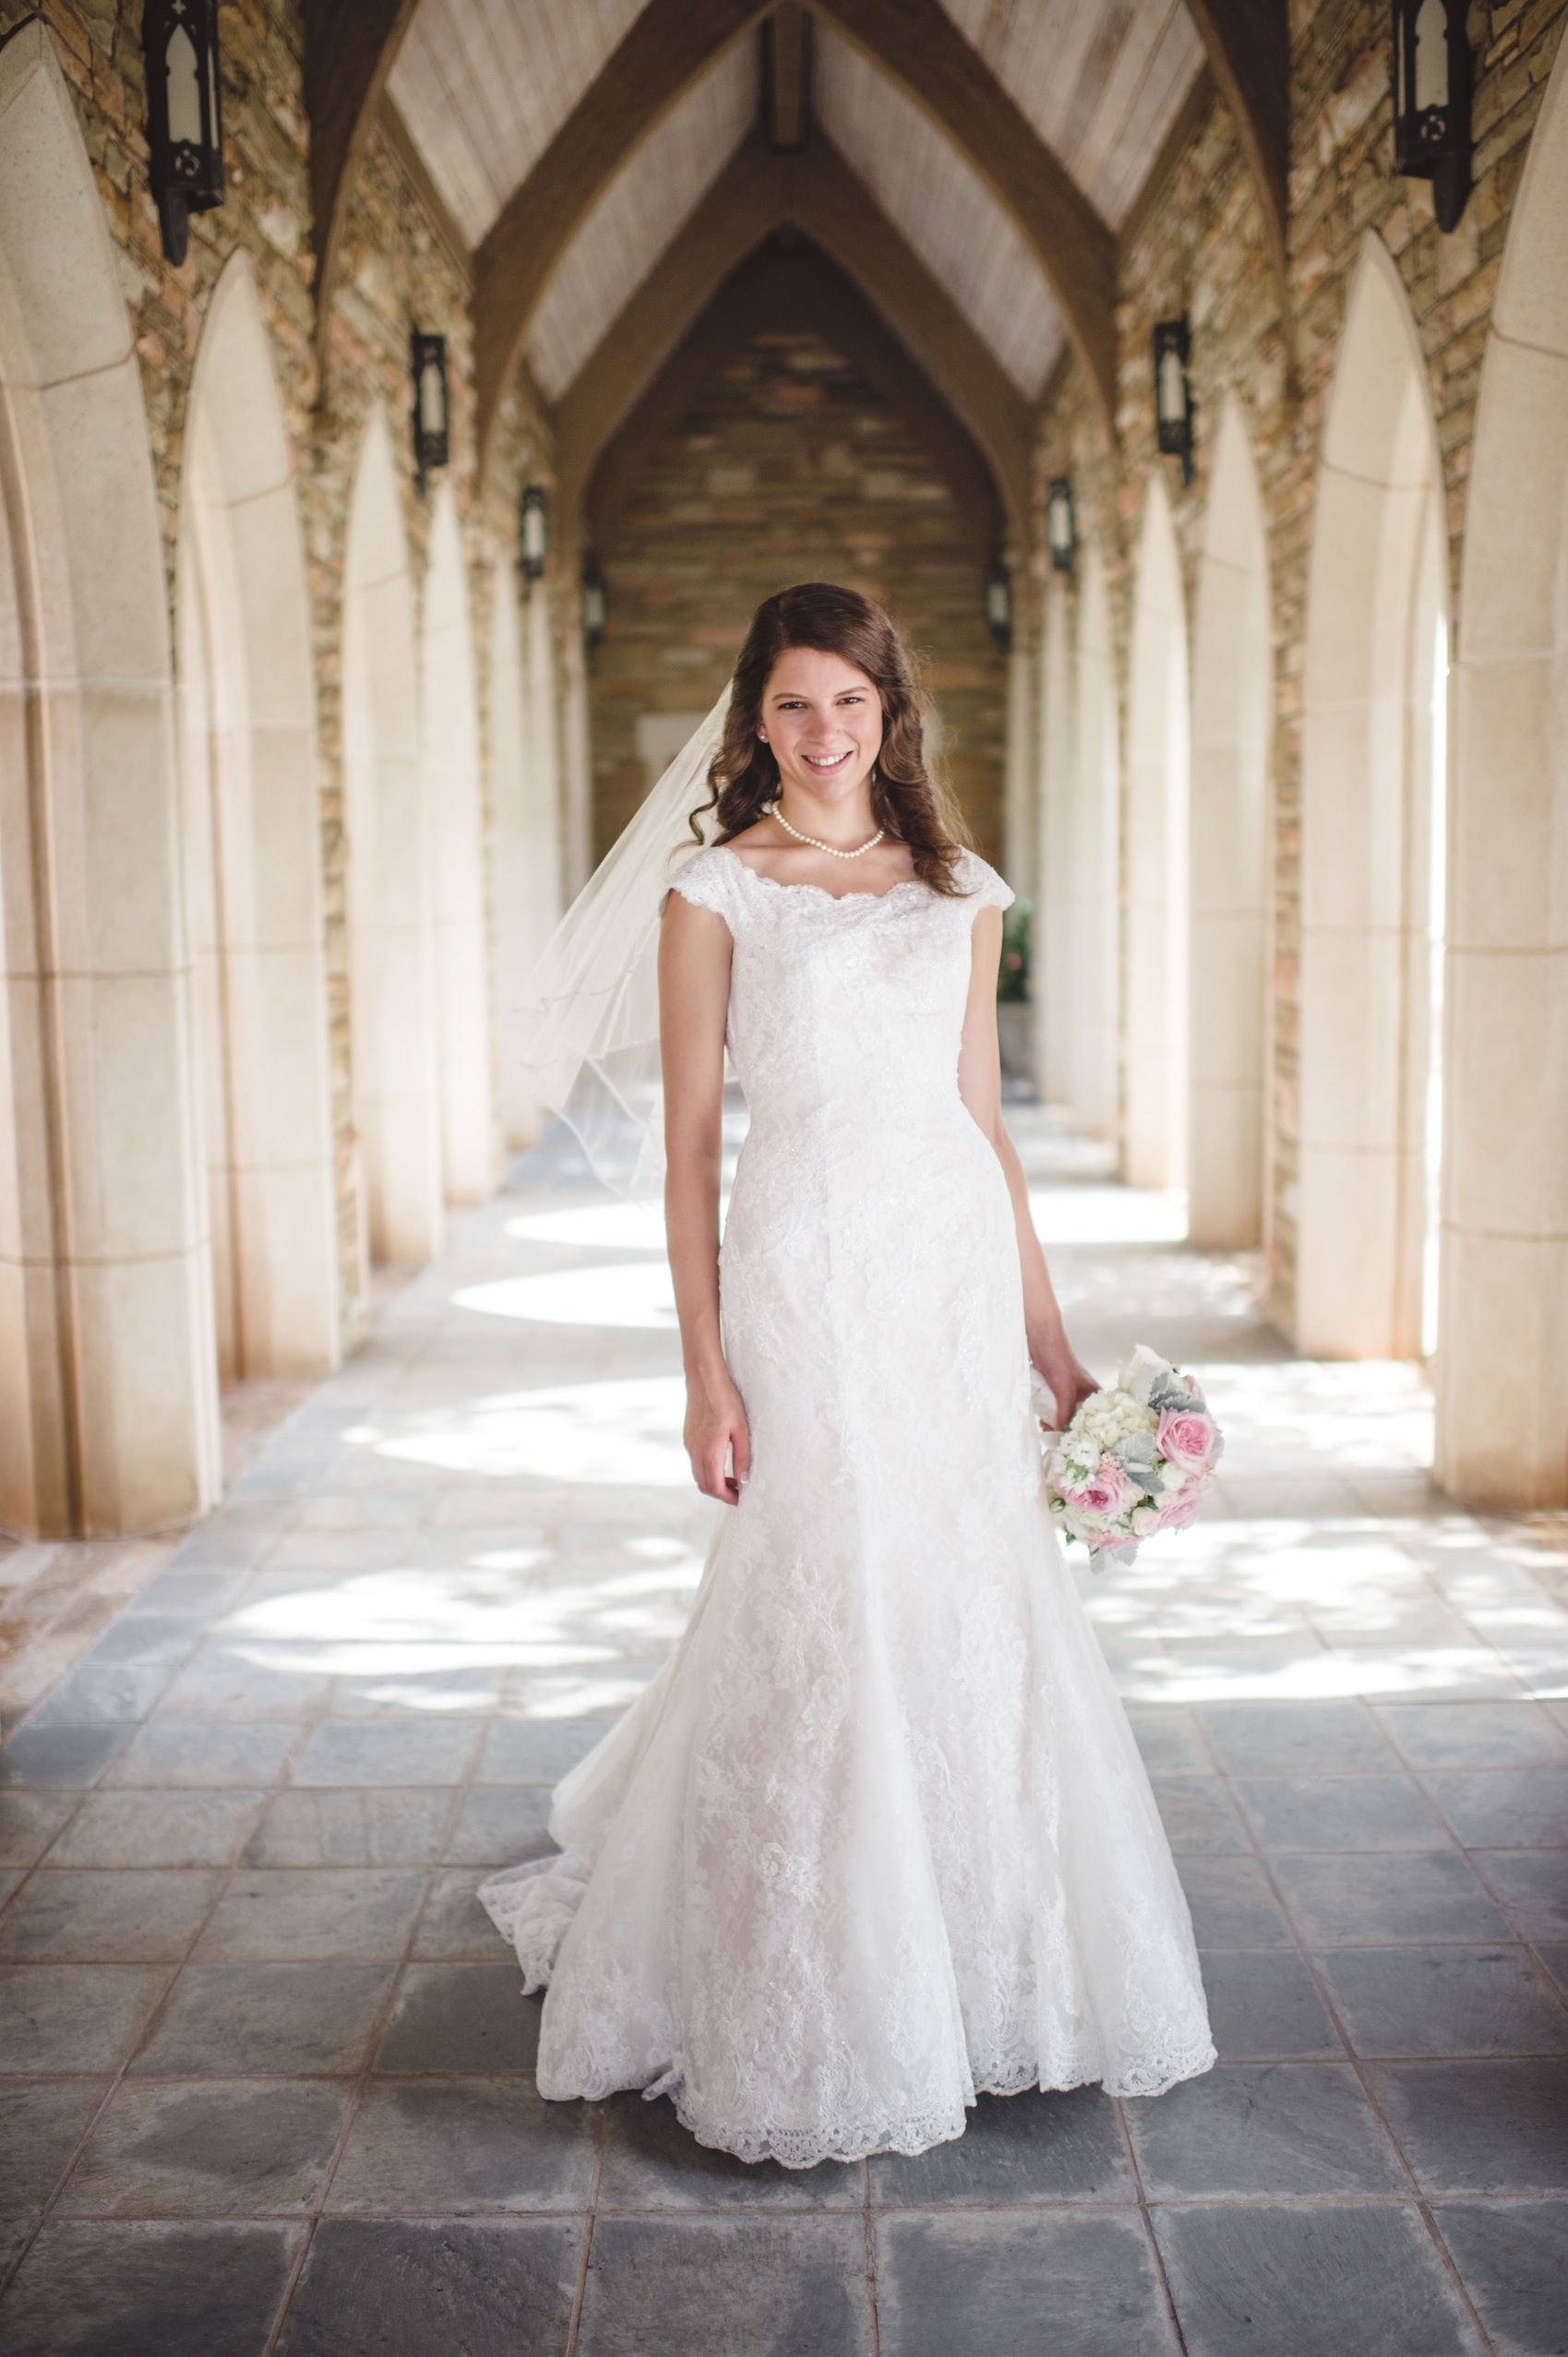 A Beautiful Bride At Historic Oklahoma City Church On Her Wedding Day I Love